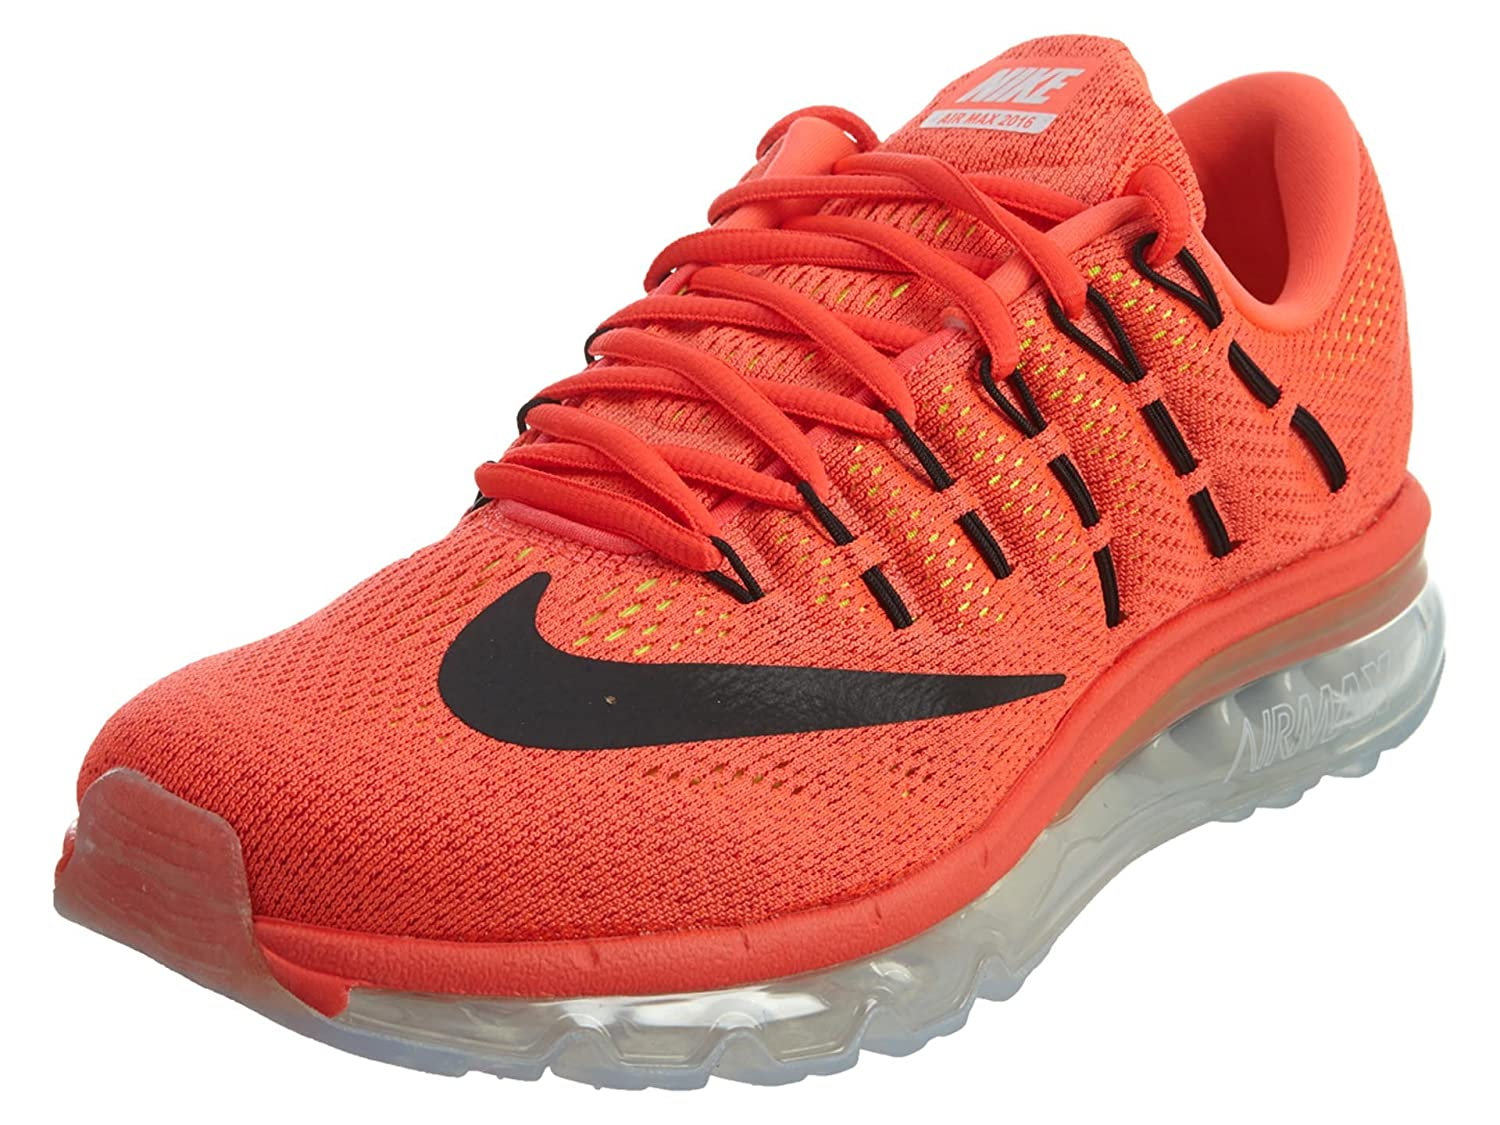 brand new 16f80 424c4 Nike Men s Air Max 2016 University Red, Bright Mango and Black Running Shoes  - 7 UK India (41 EU)(8 US)  Buy Online at Low Prices in India - Amazon.in